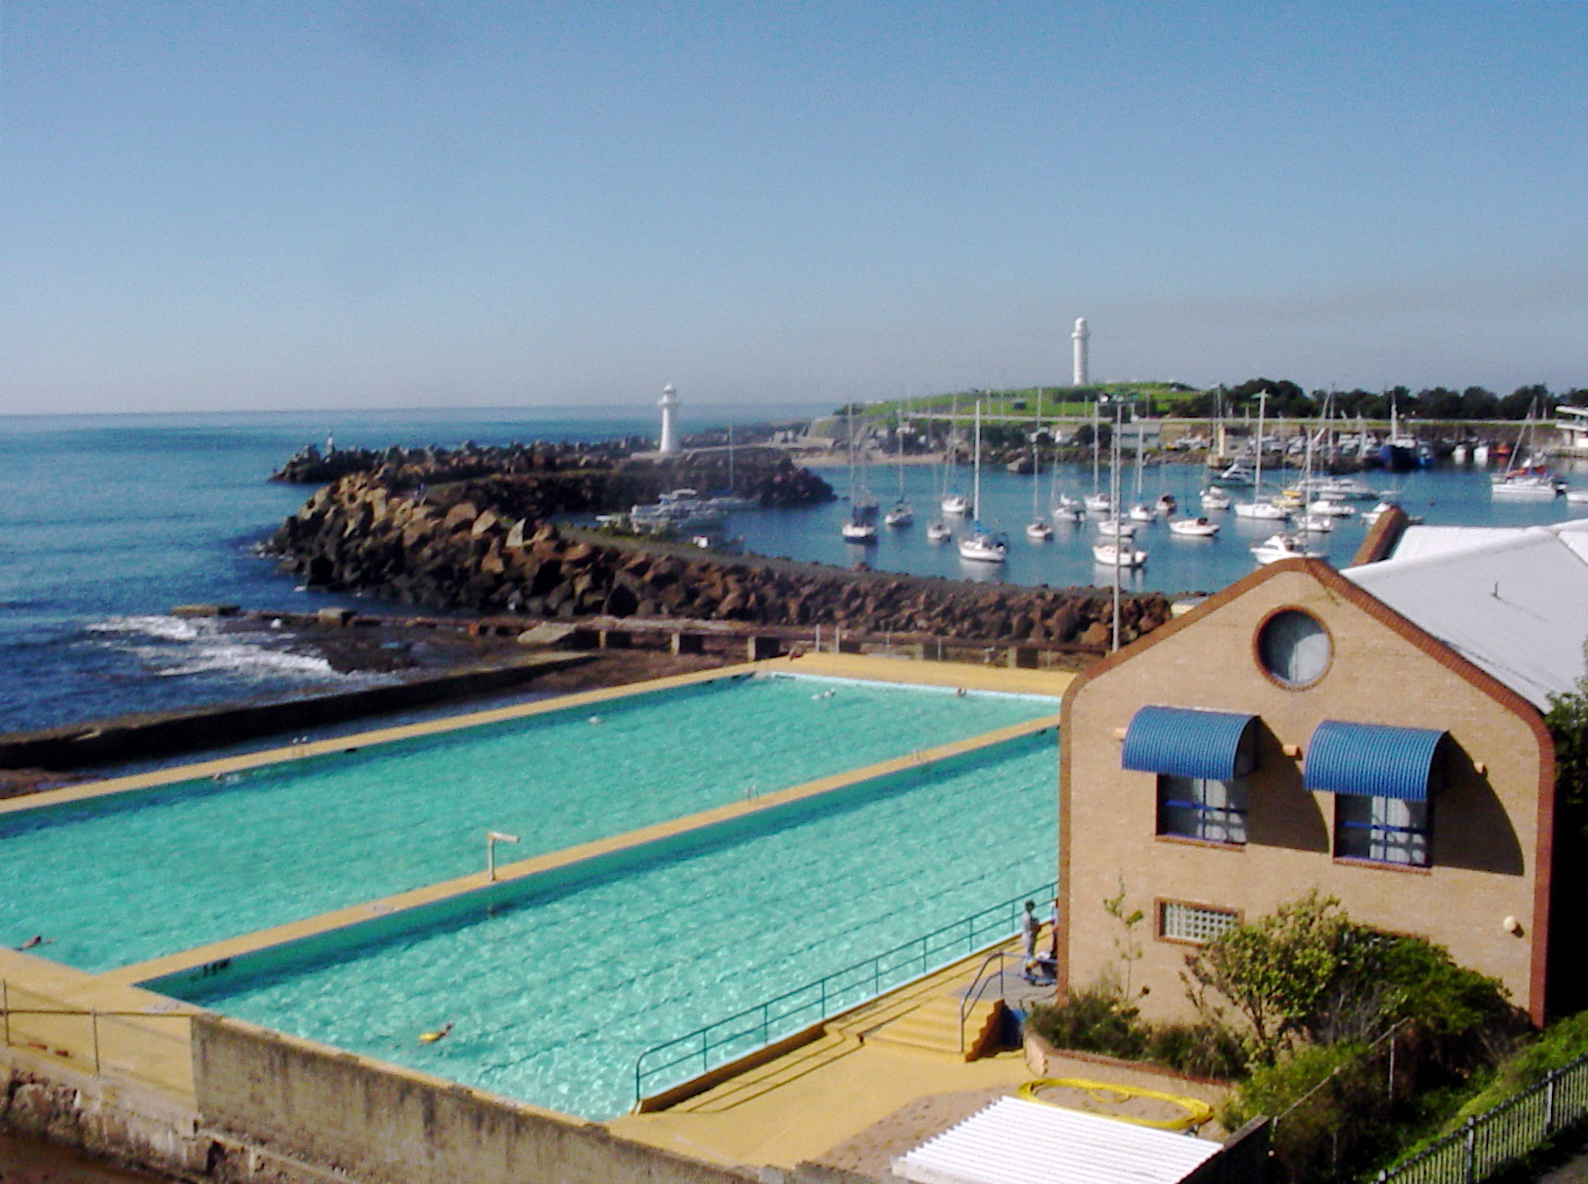 Wollongong Continental Baths (Wollongong Central Baths)